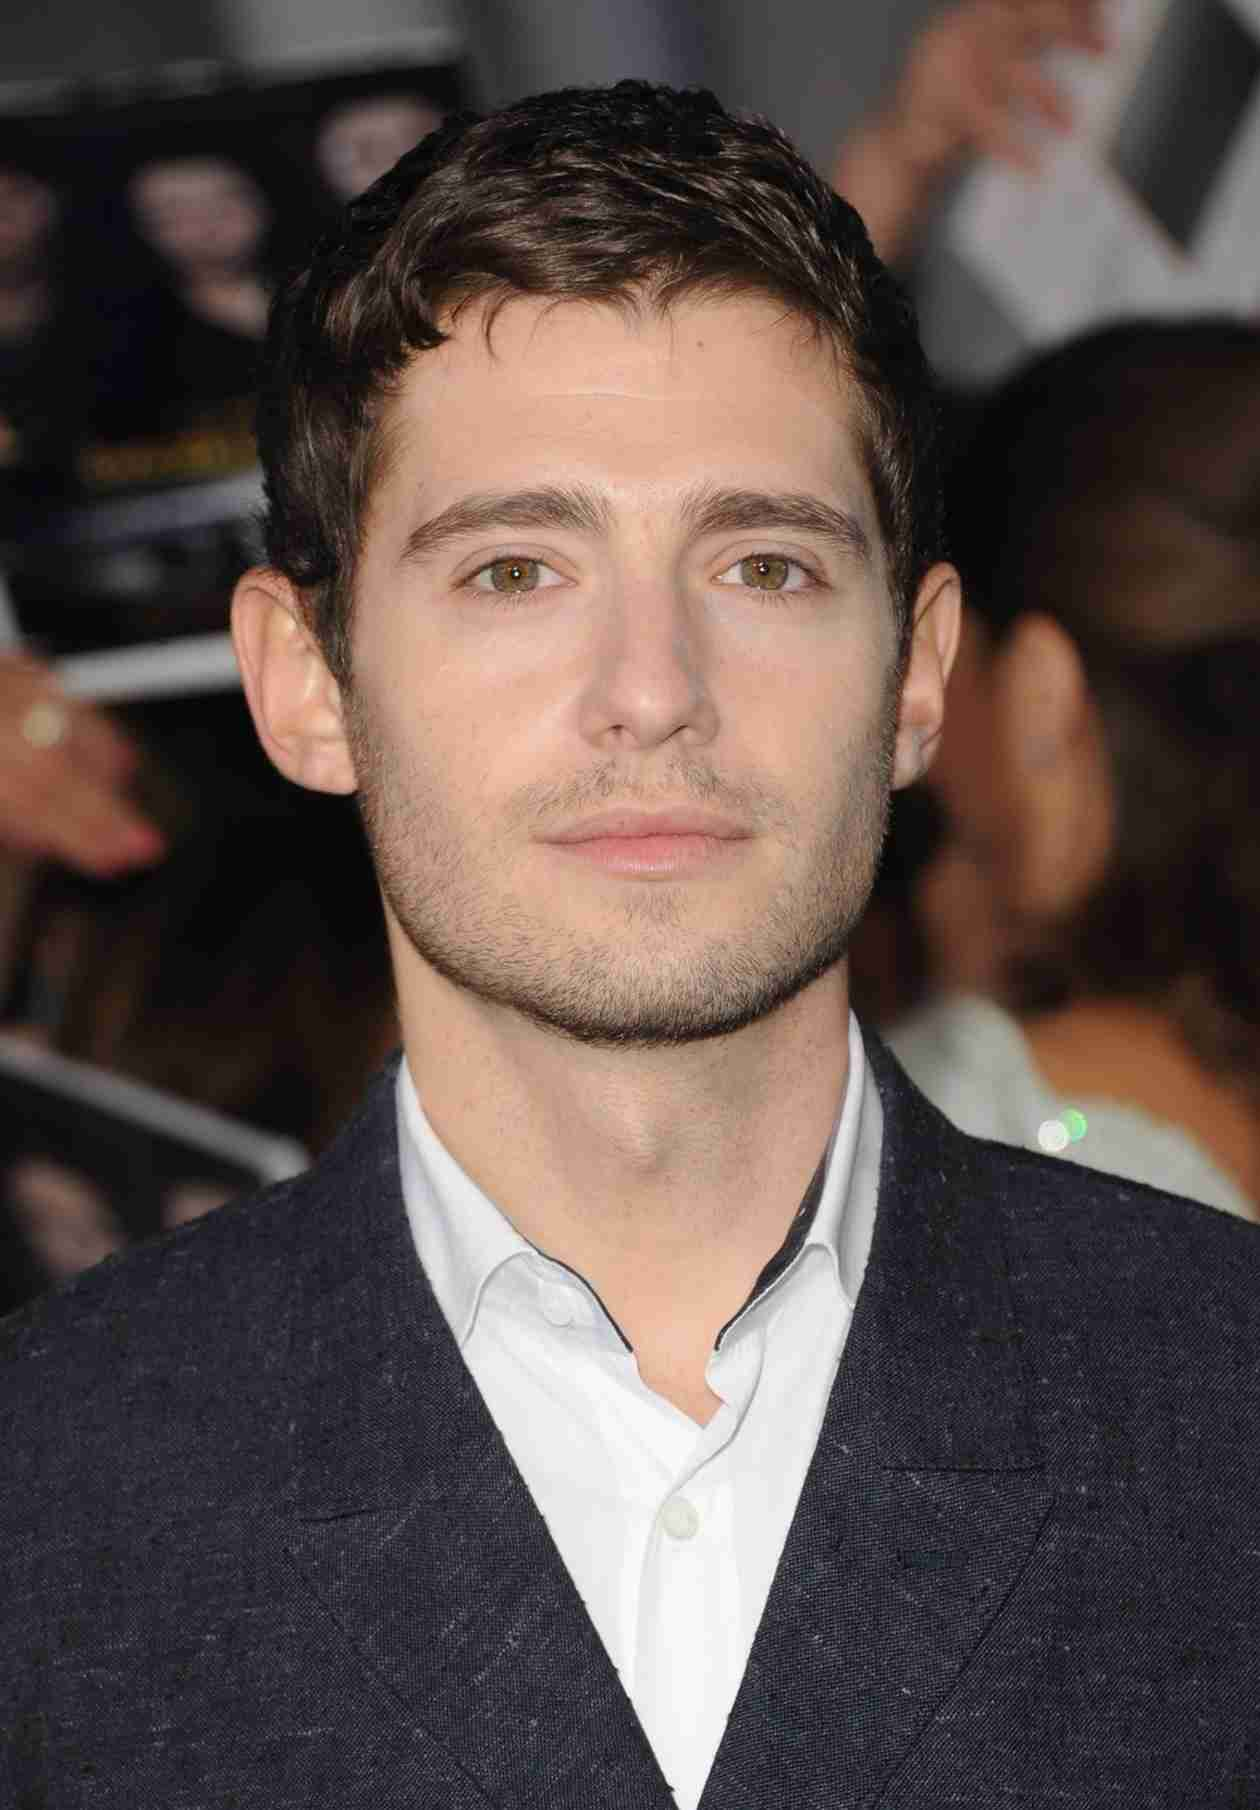 Julian Morris Scores New Gig — Which Big Star Will He Romance?